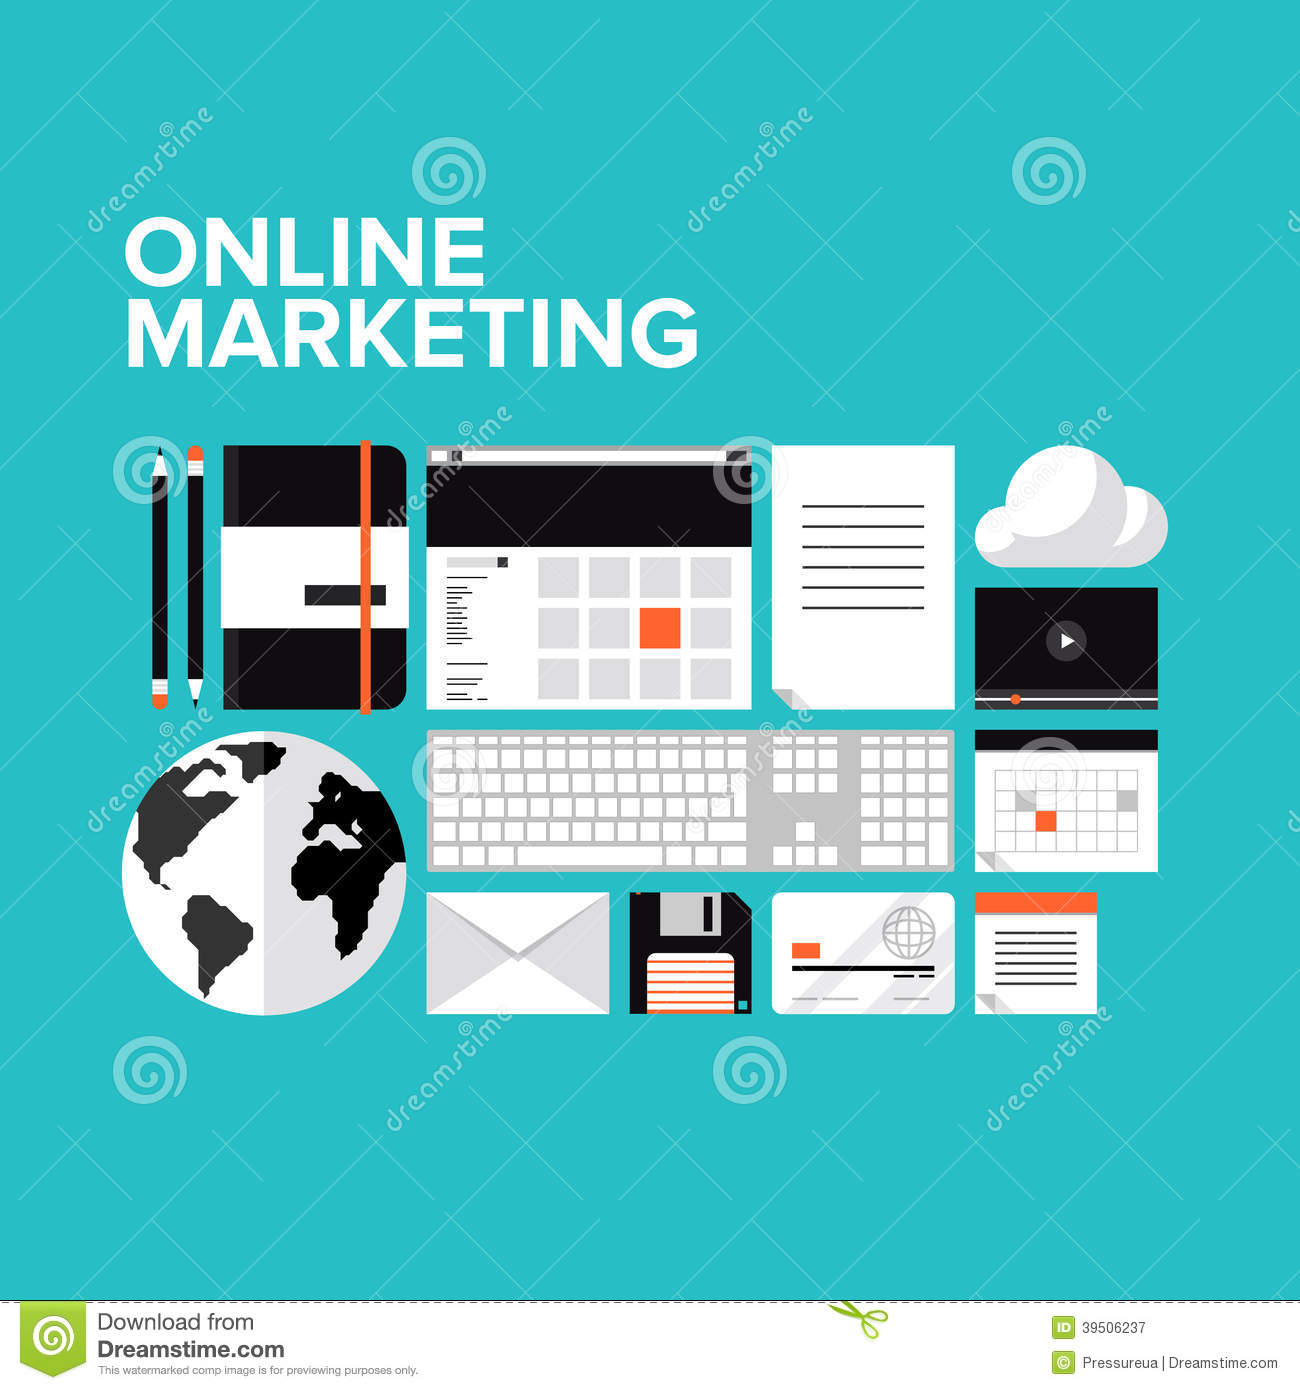 Online marketing flat icons set stock vector image 39506237 for Make a blueprint free online